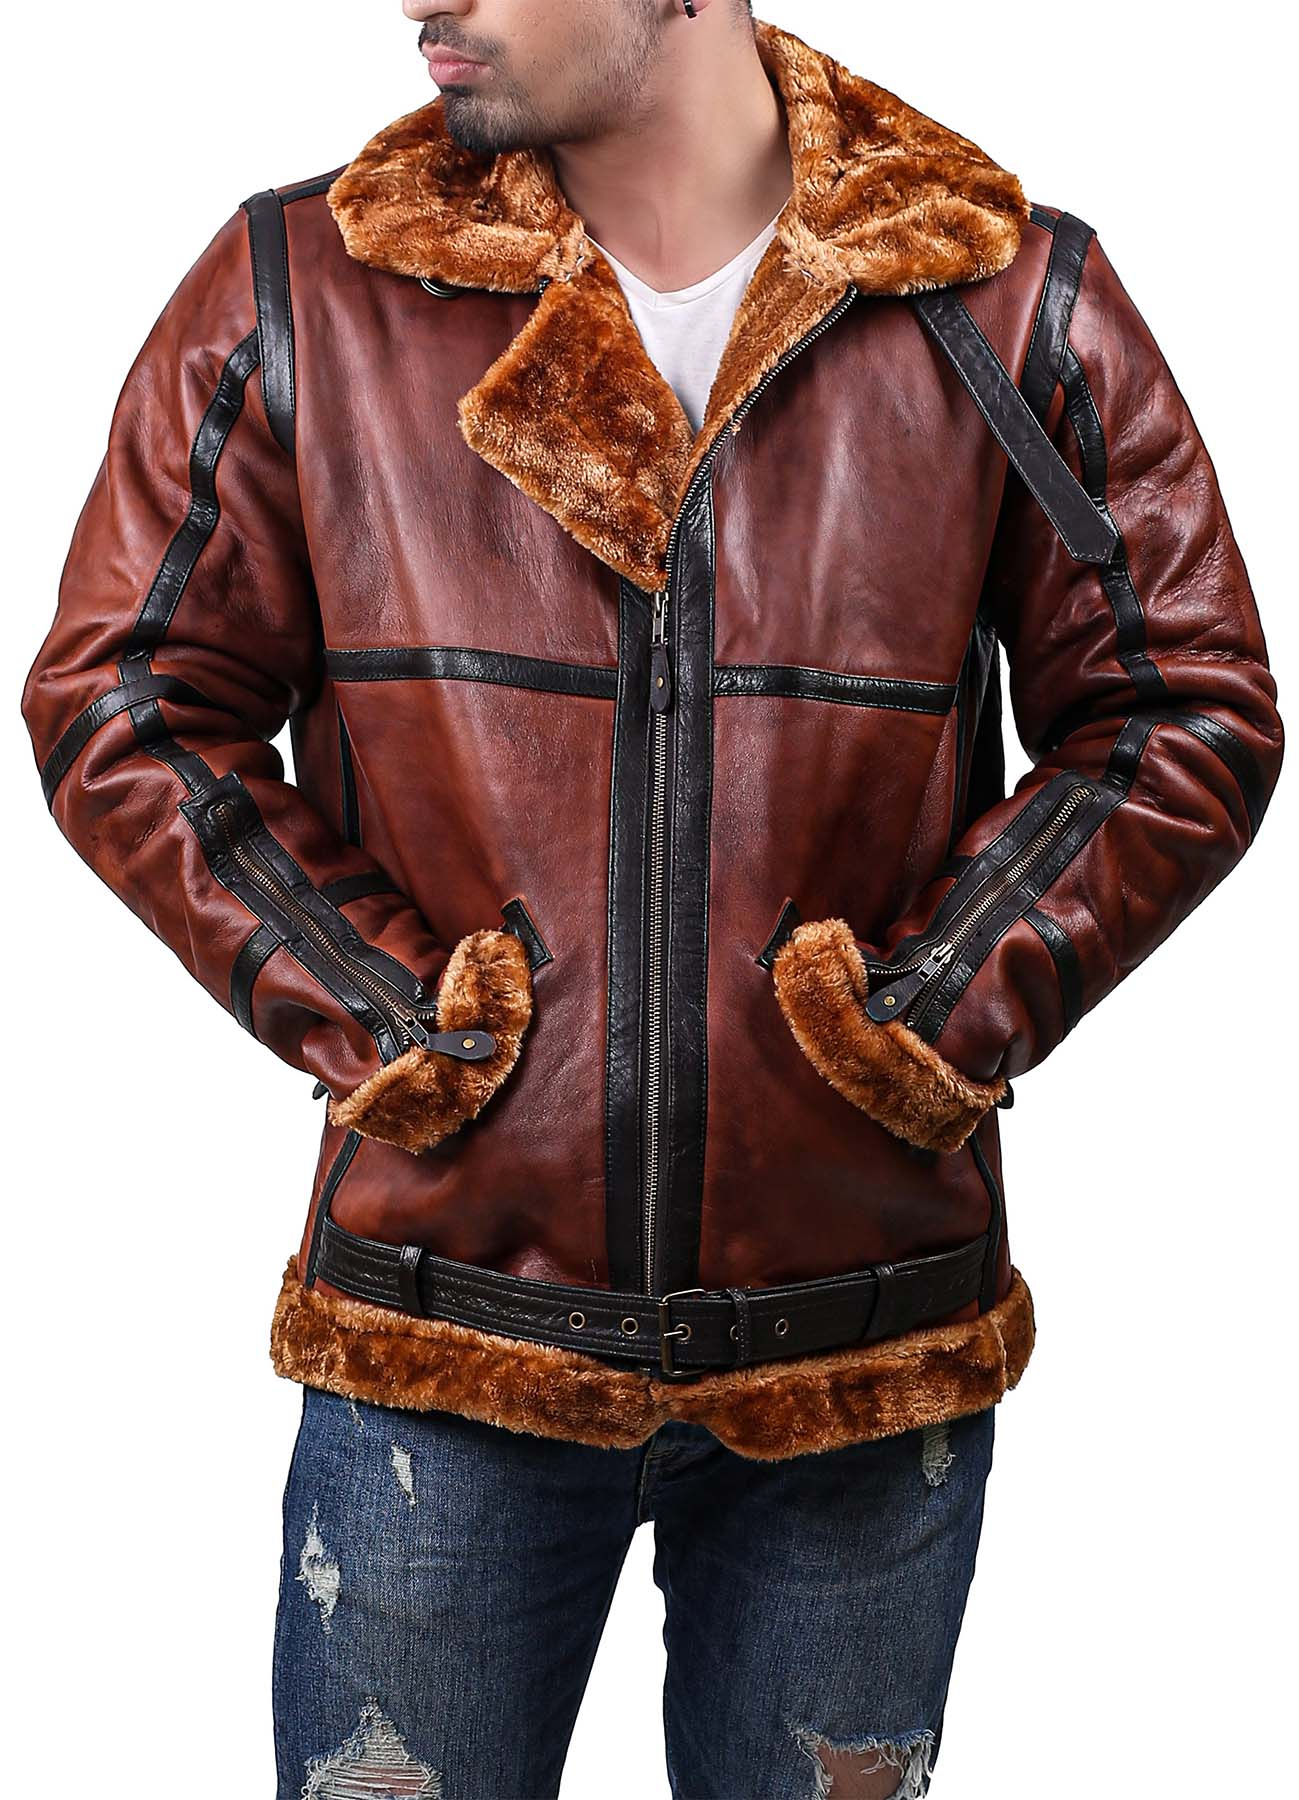 Black And Brown B3 leather jacket with Rust Shearling